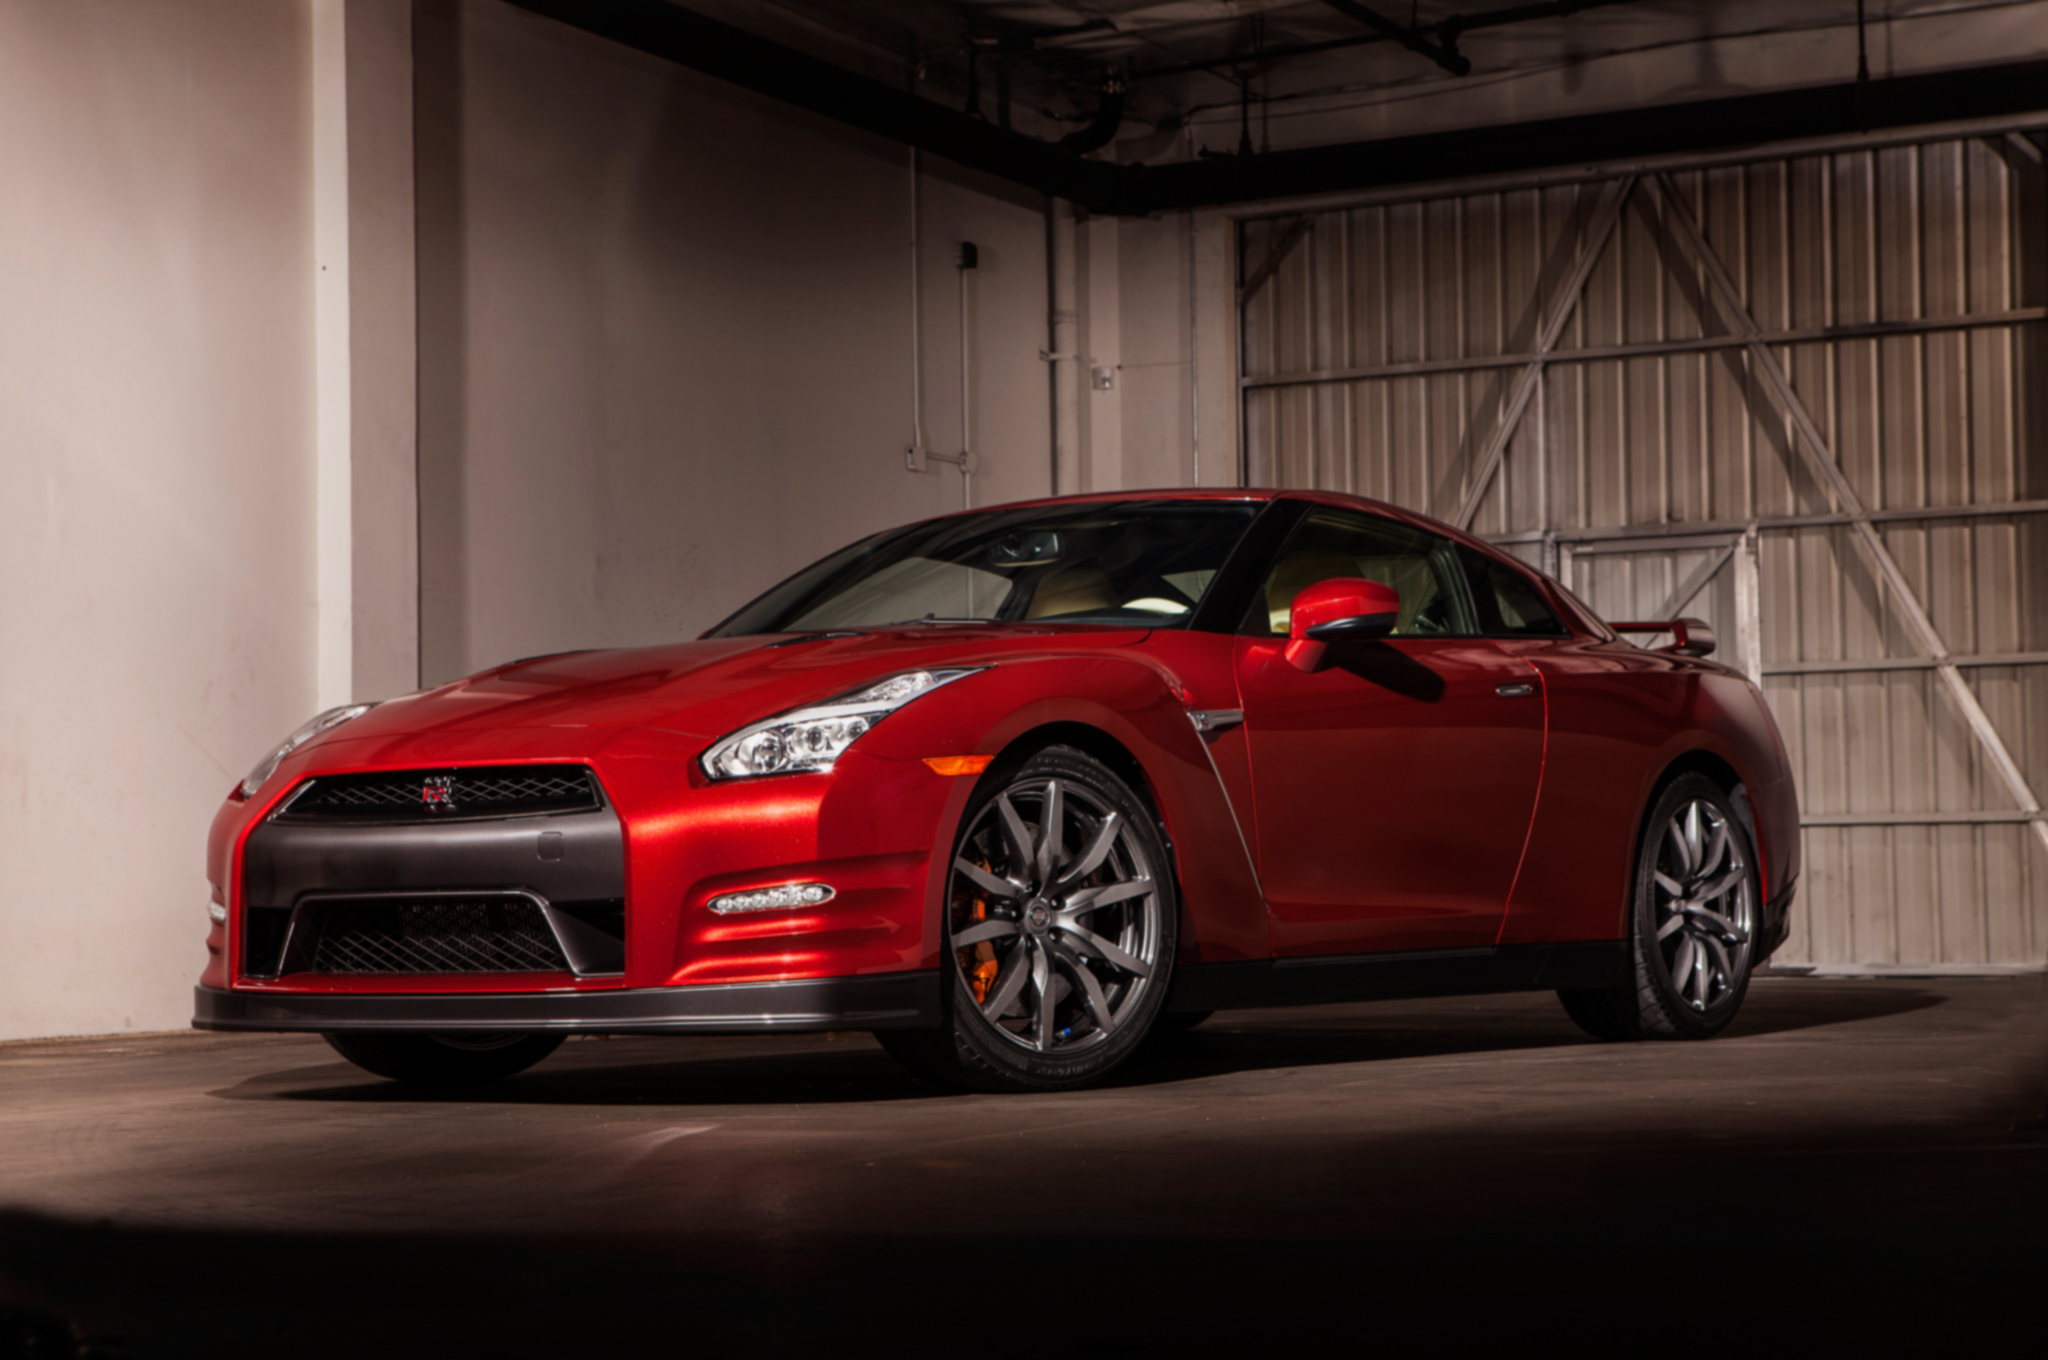 Great 2015 Nissan GT R Nismo Starts At $151,585, On Sale In July